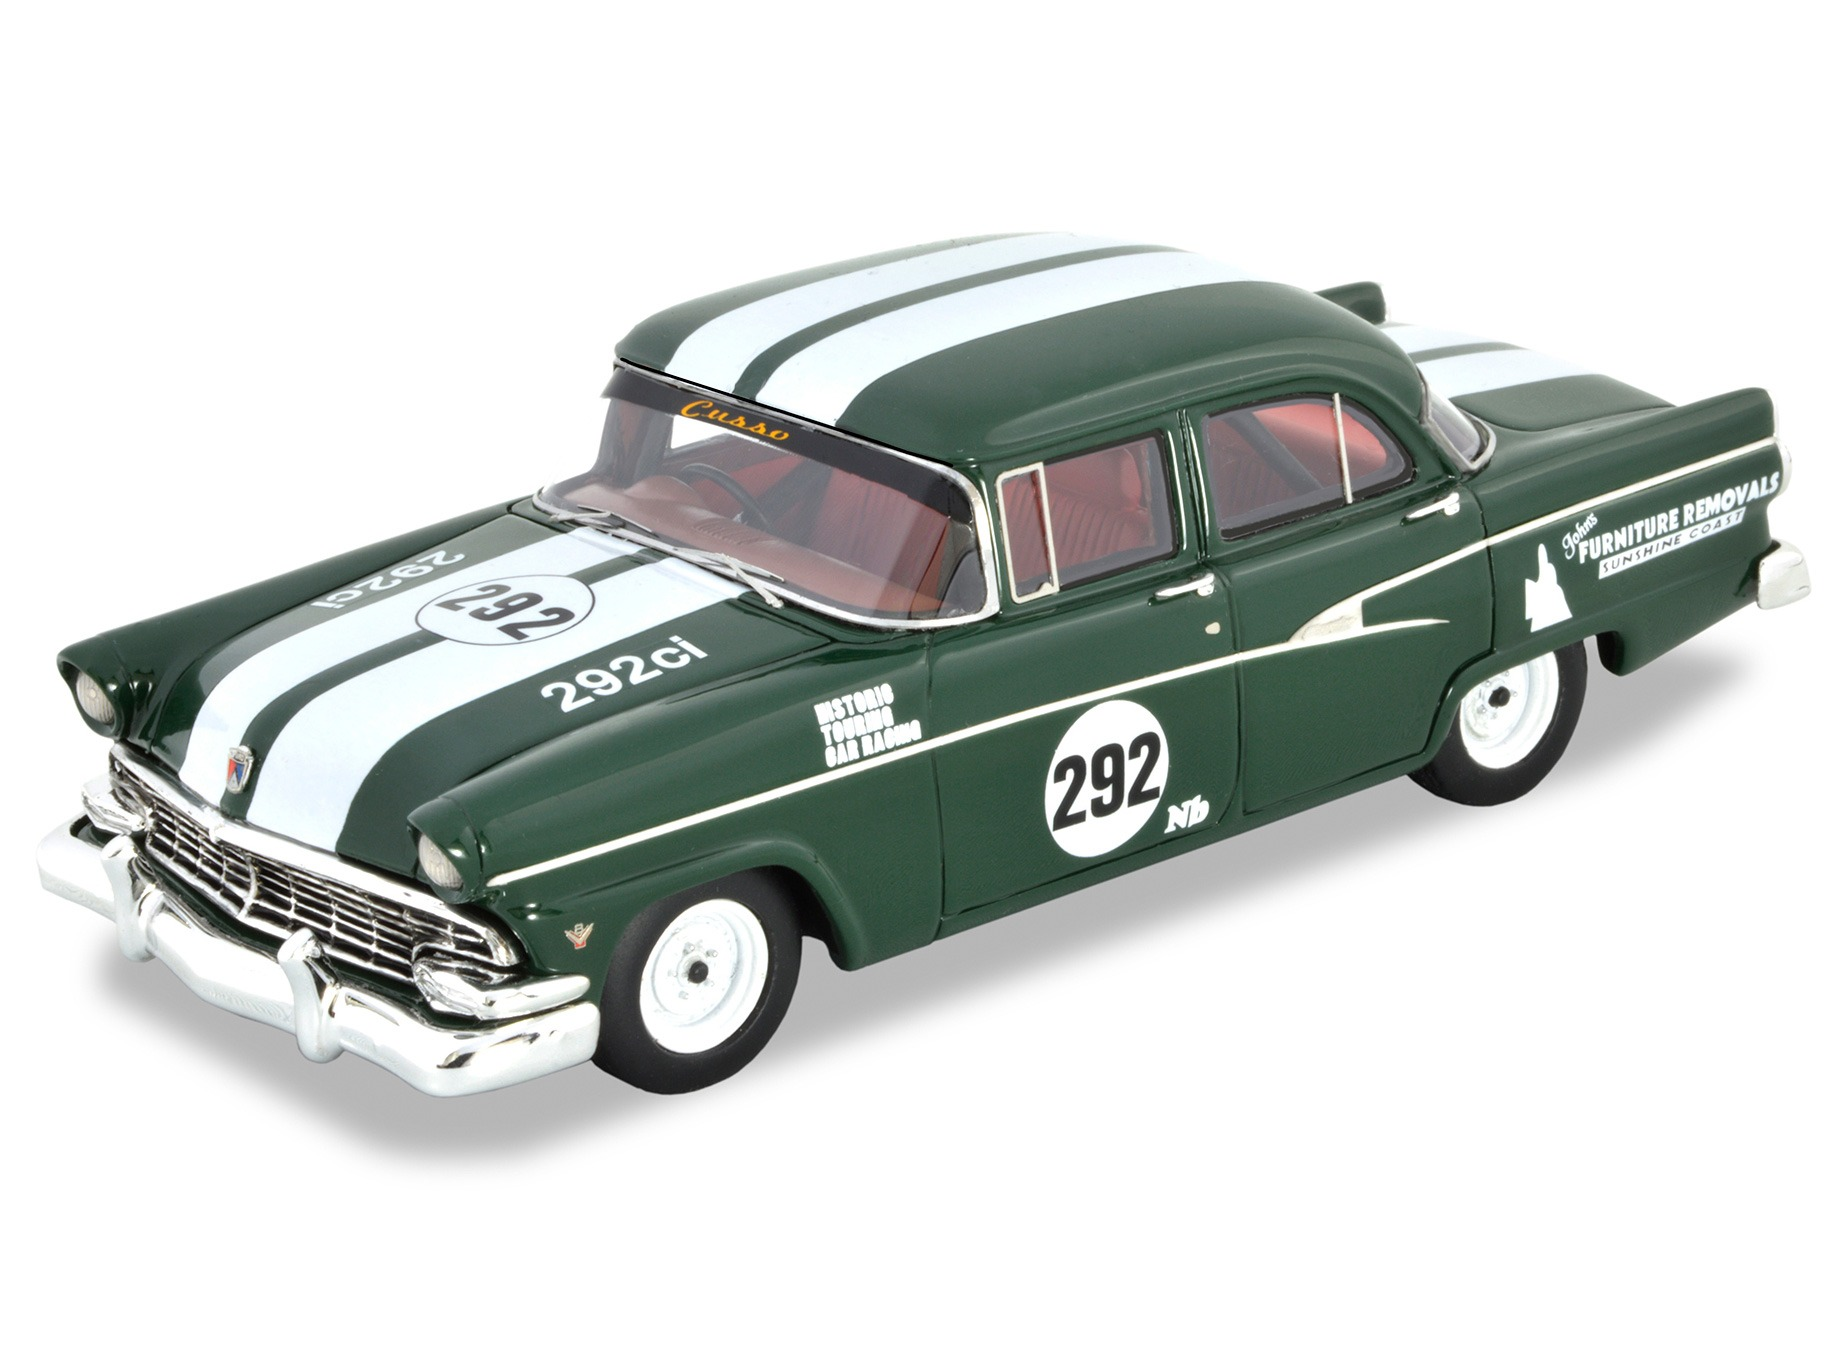 1956 Ford Customline Racing Car – British Racing Green